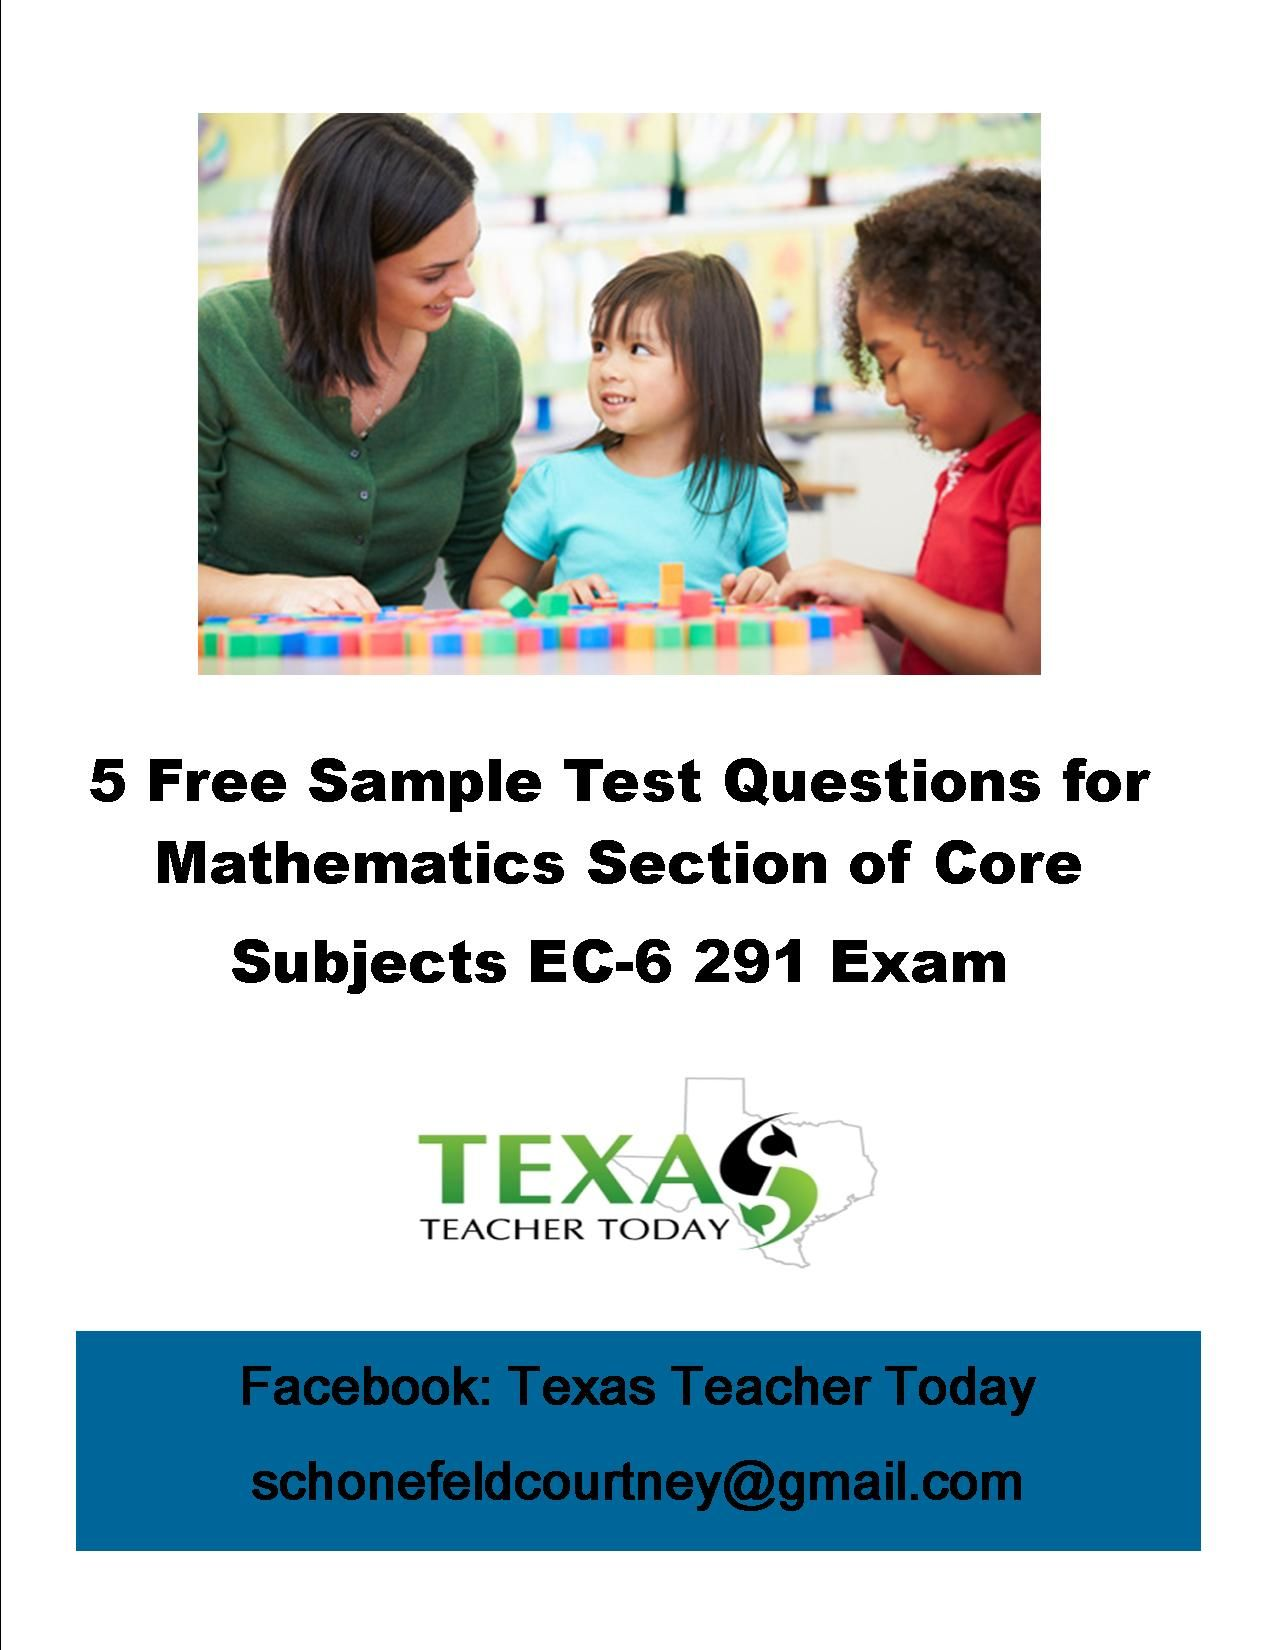 Passing the texes certification exam - Five Free Sample Test Questions For The Mathematics Section Of The Texes Core Subjects Ec